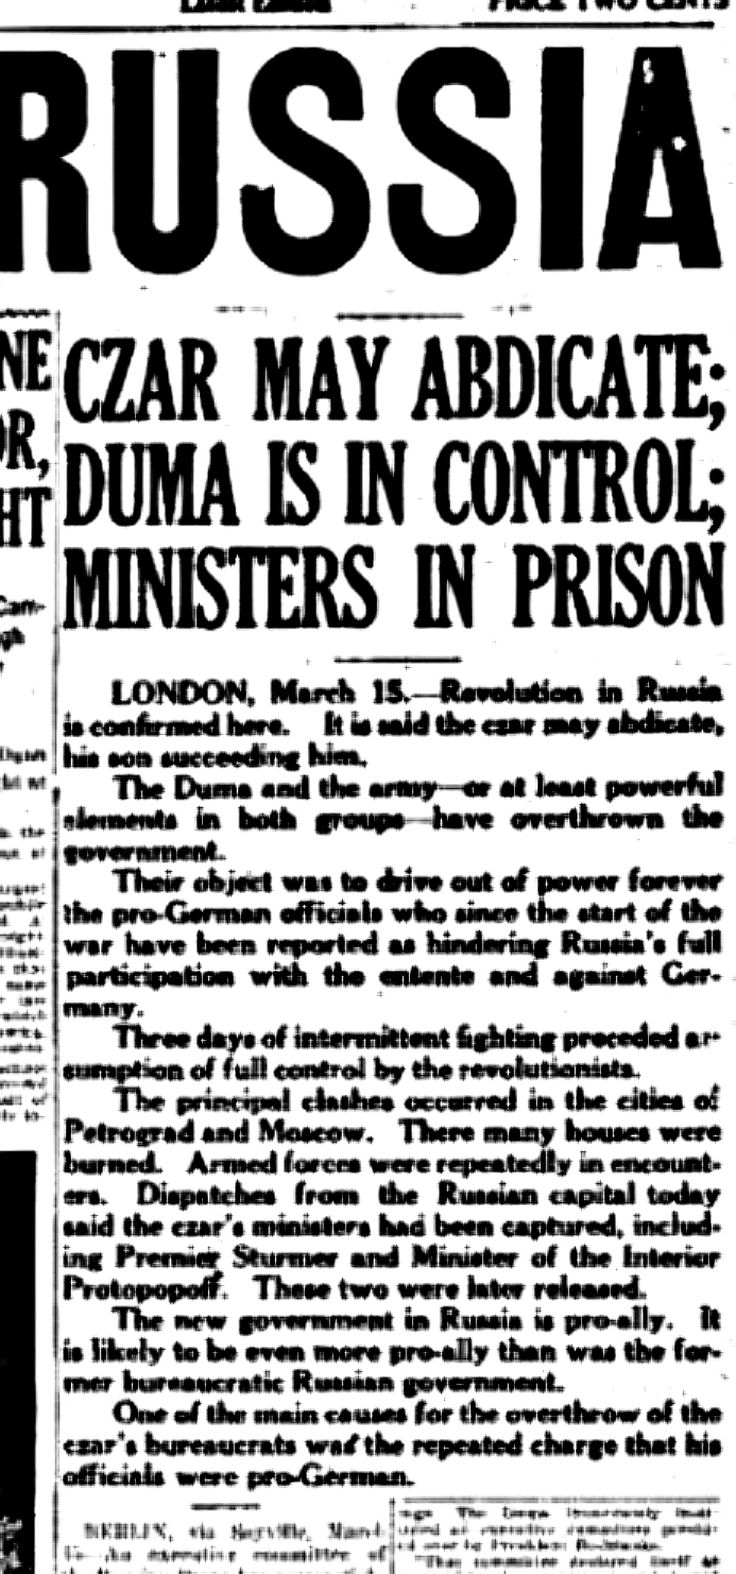 """WWI, 15 March 1917;"""" Revolution in Russia is confirmed here. It is said the czar may abdicate, his son succeeding him. The Duma and the army- or at least powerful elements in both groups- has overthrown the government. """" -The Wisconsin State Journal"""